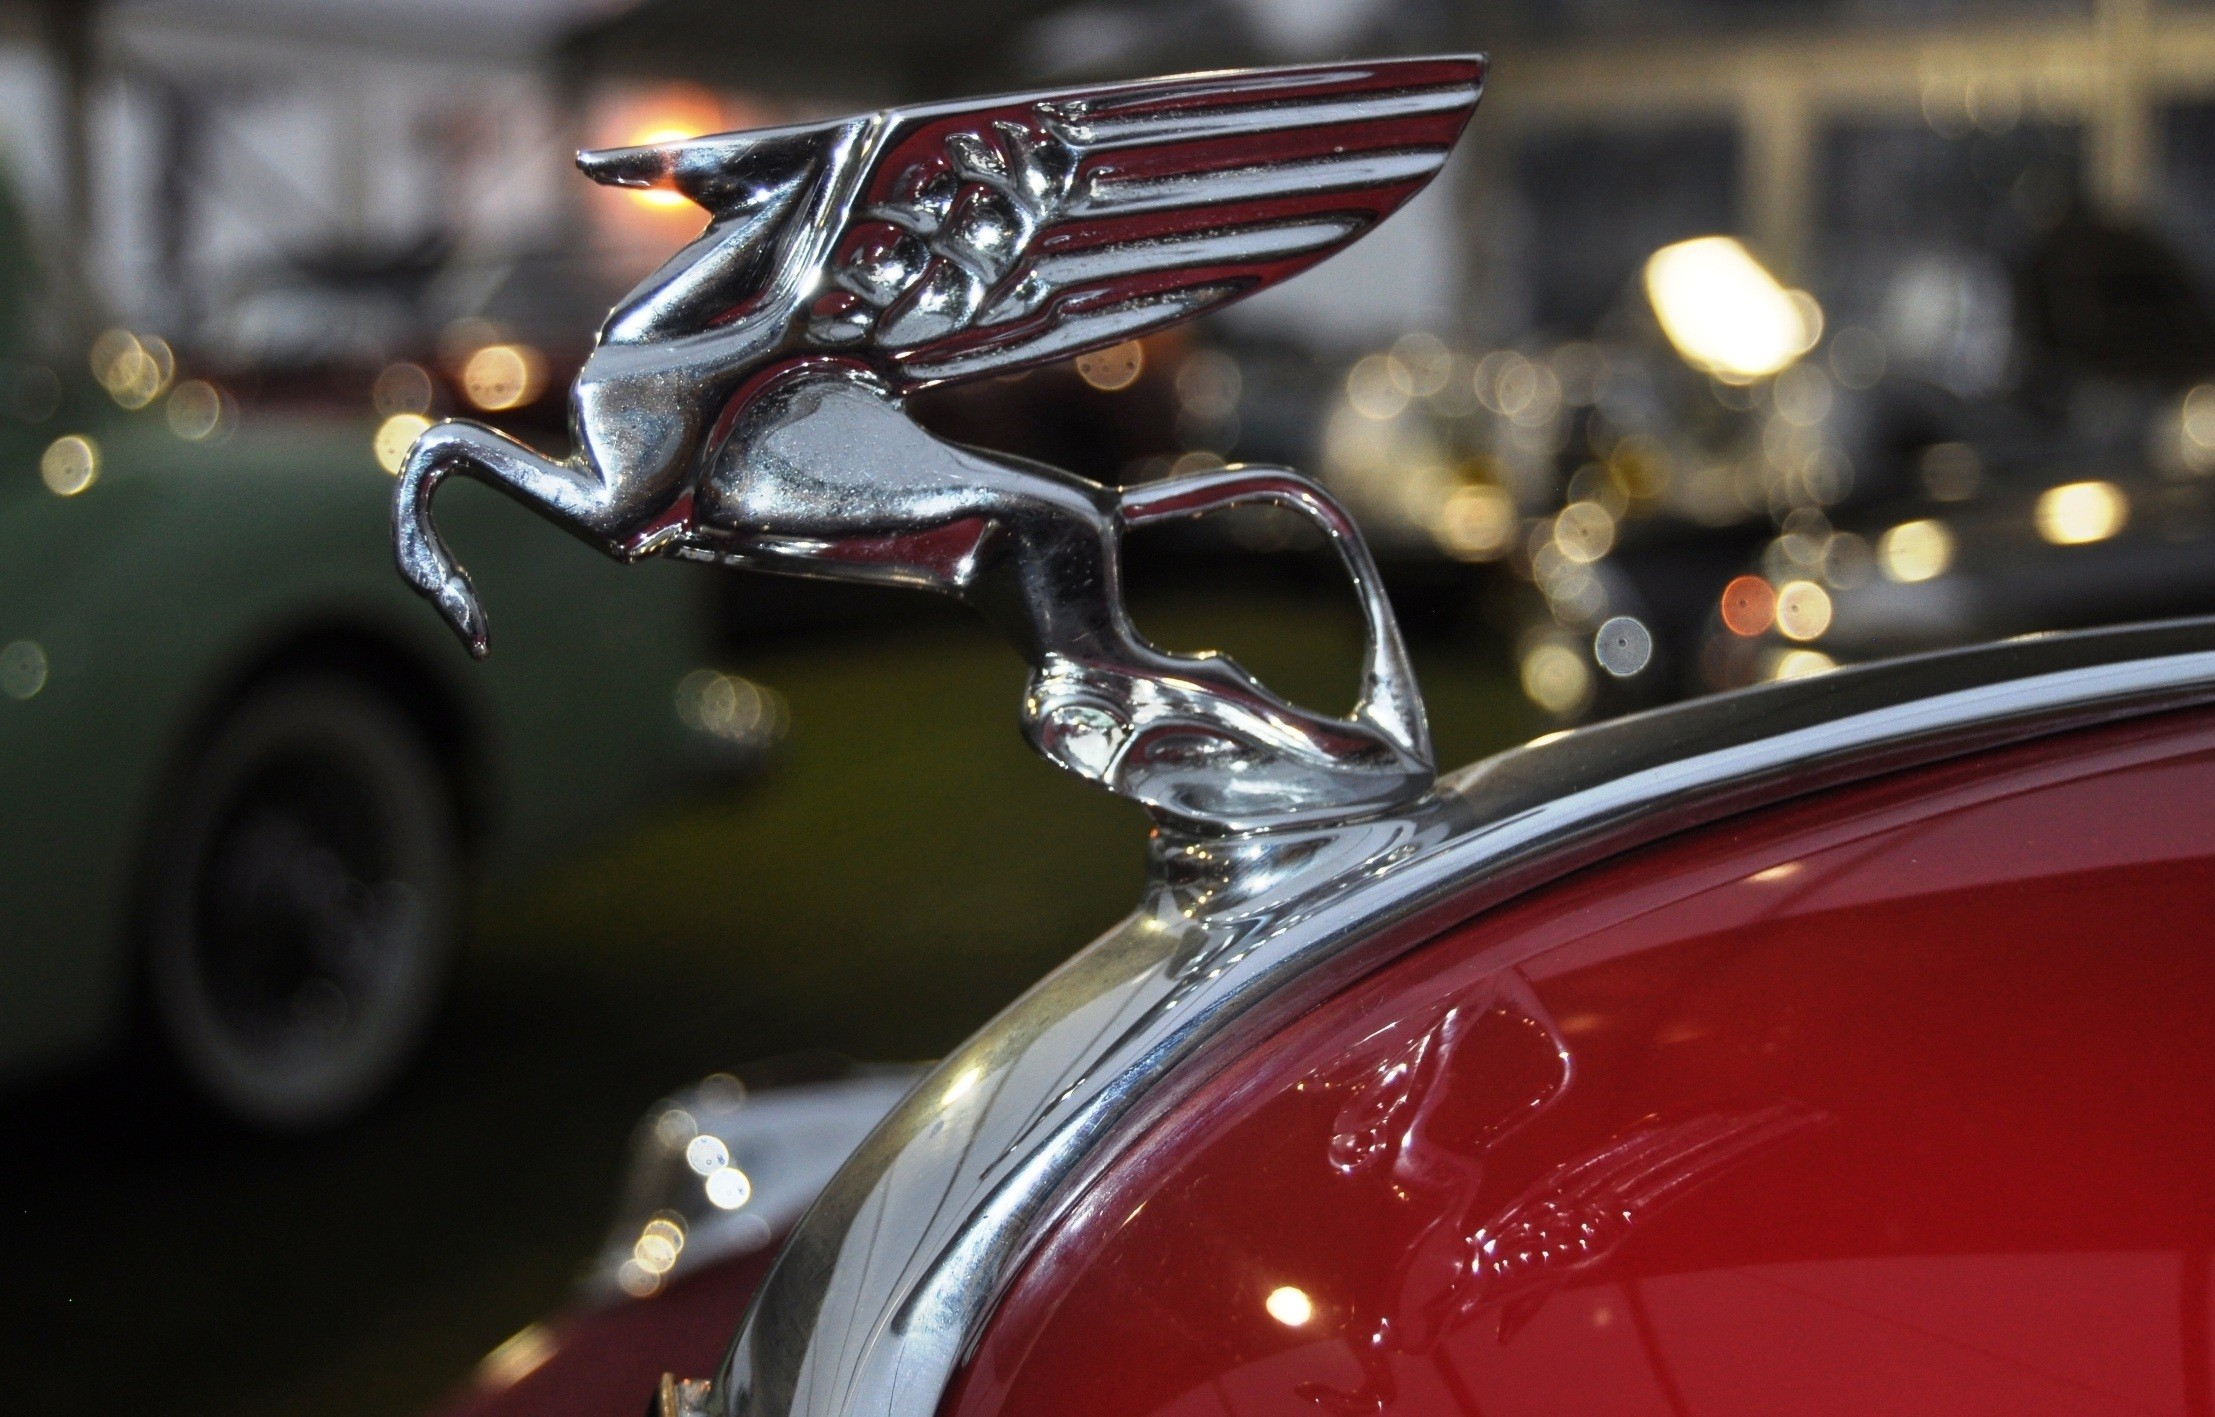 Coolest Vintage Hood Ornaments -- RM Auctions Amelia Island 2014 -- Pierce-Arrow, Cadillac, Stutz, Chrysler, Ford, Aston-Martin, Bentley and More 11